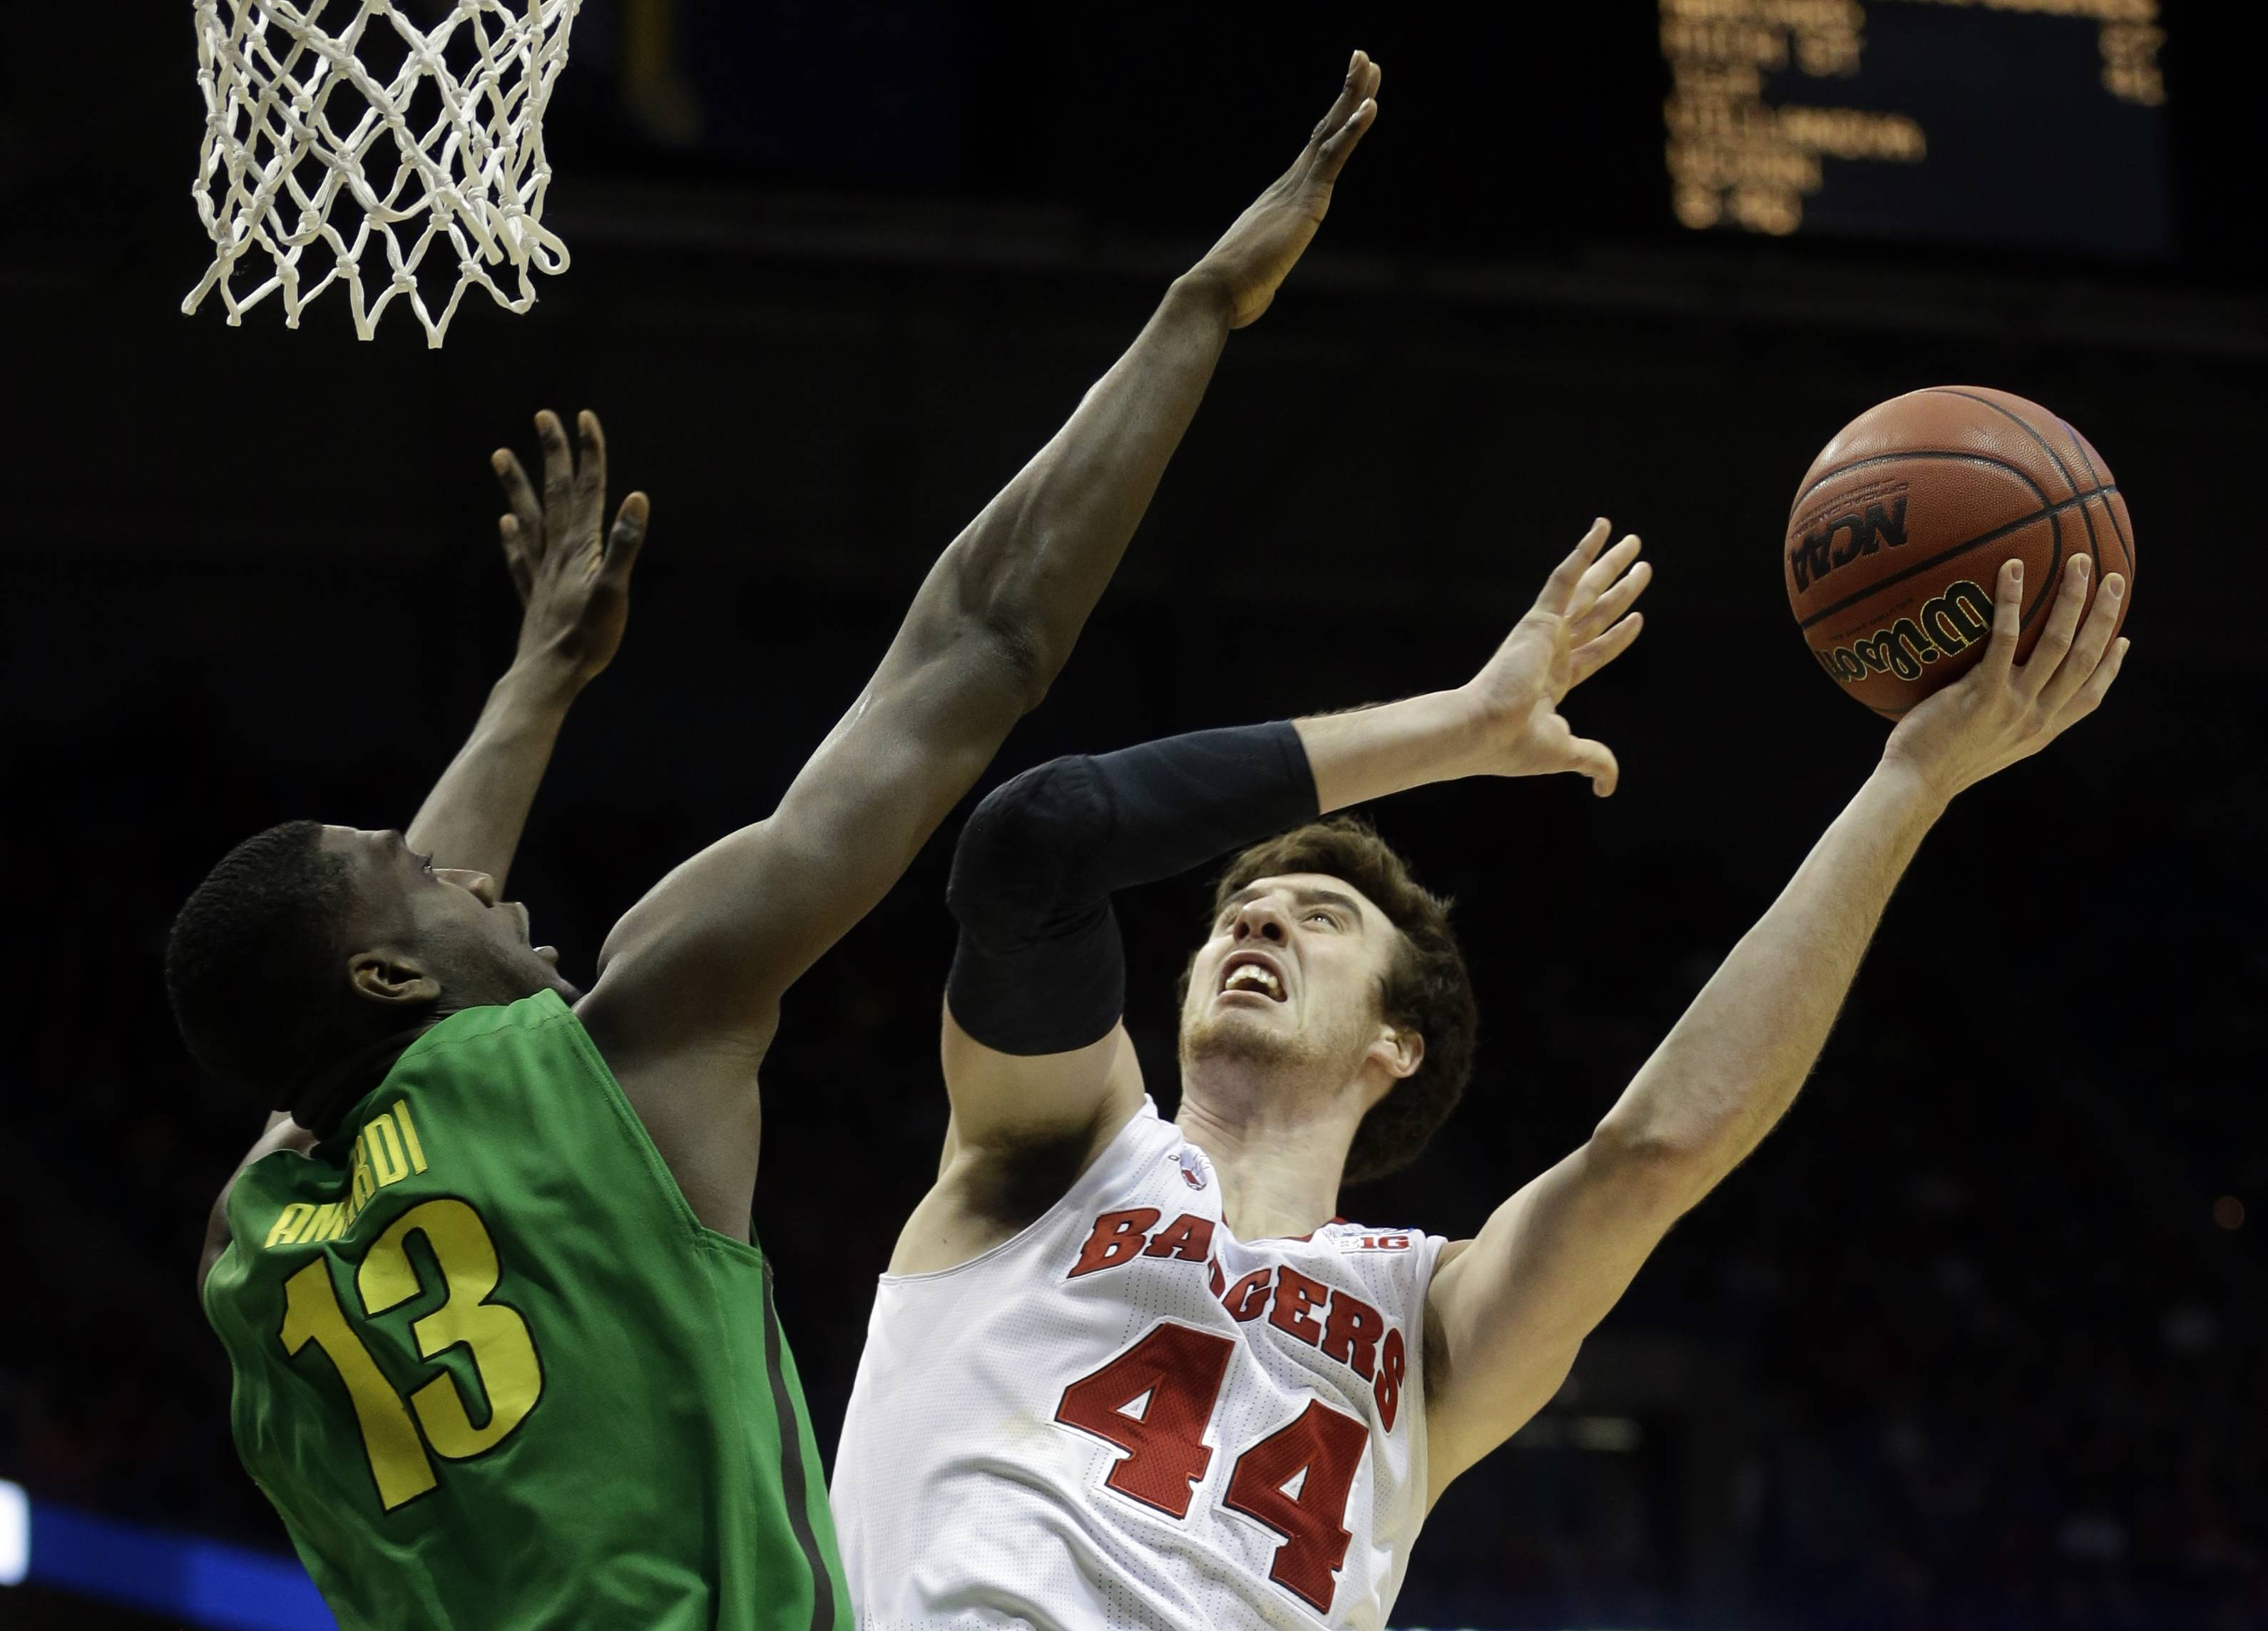 Wisconsin forward Frank Kaminsky (44) takes a shot against Oregon forward Richard Amardi (13) during a third-round game of the NCAA college basketball tournament Saturday in Milwaukee.